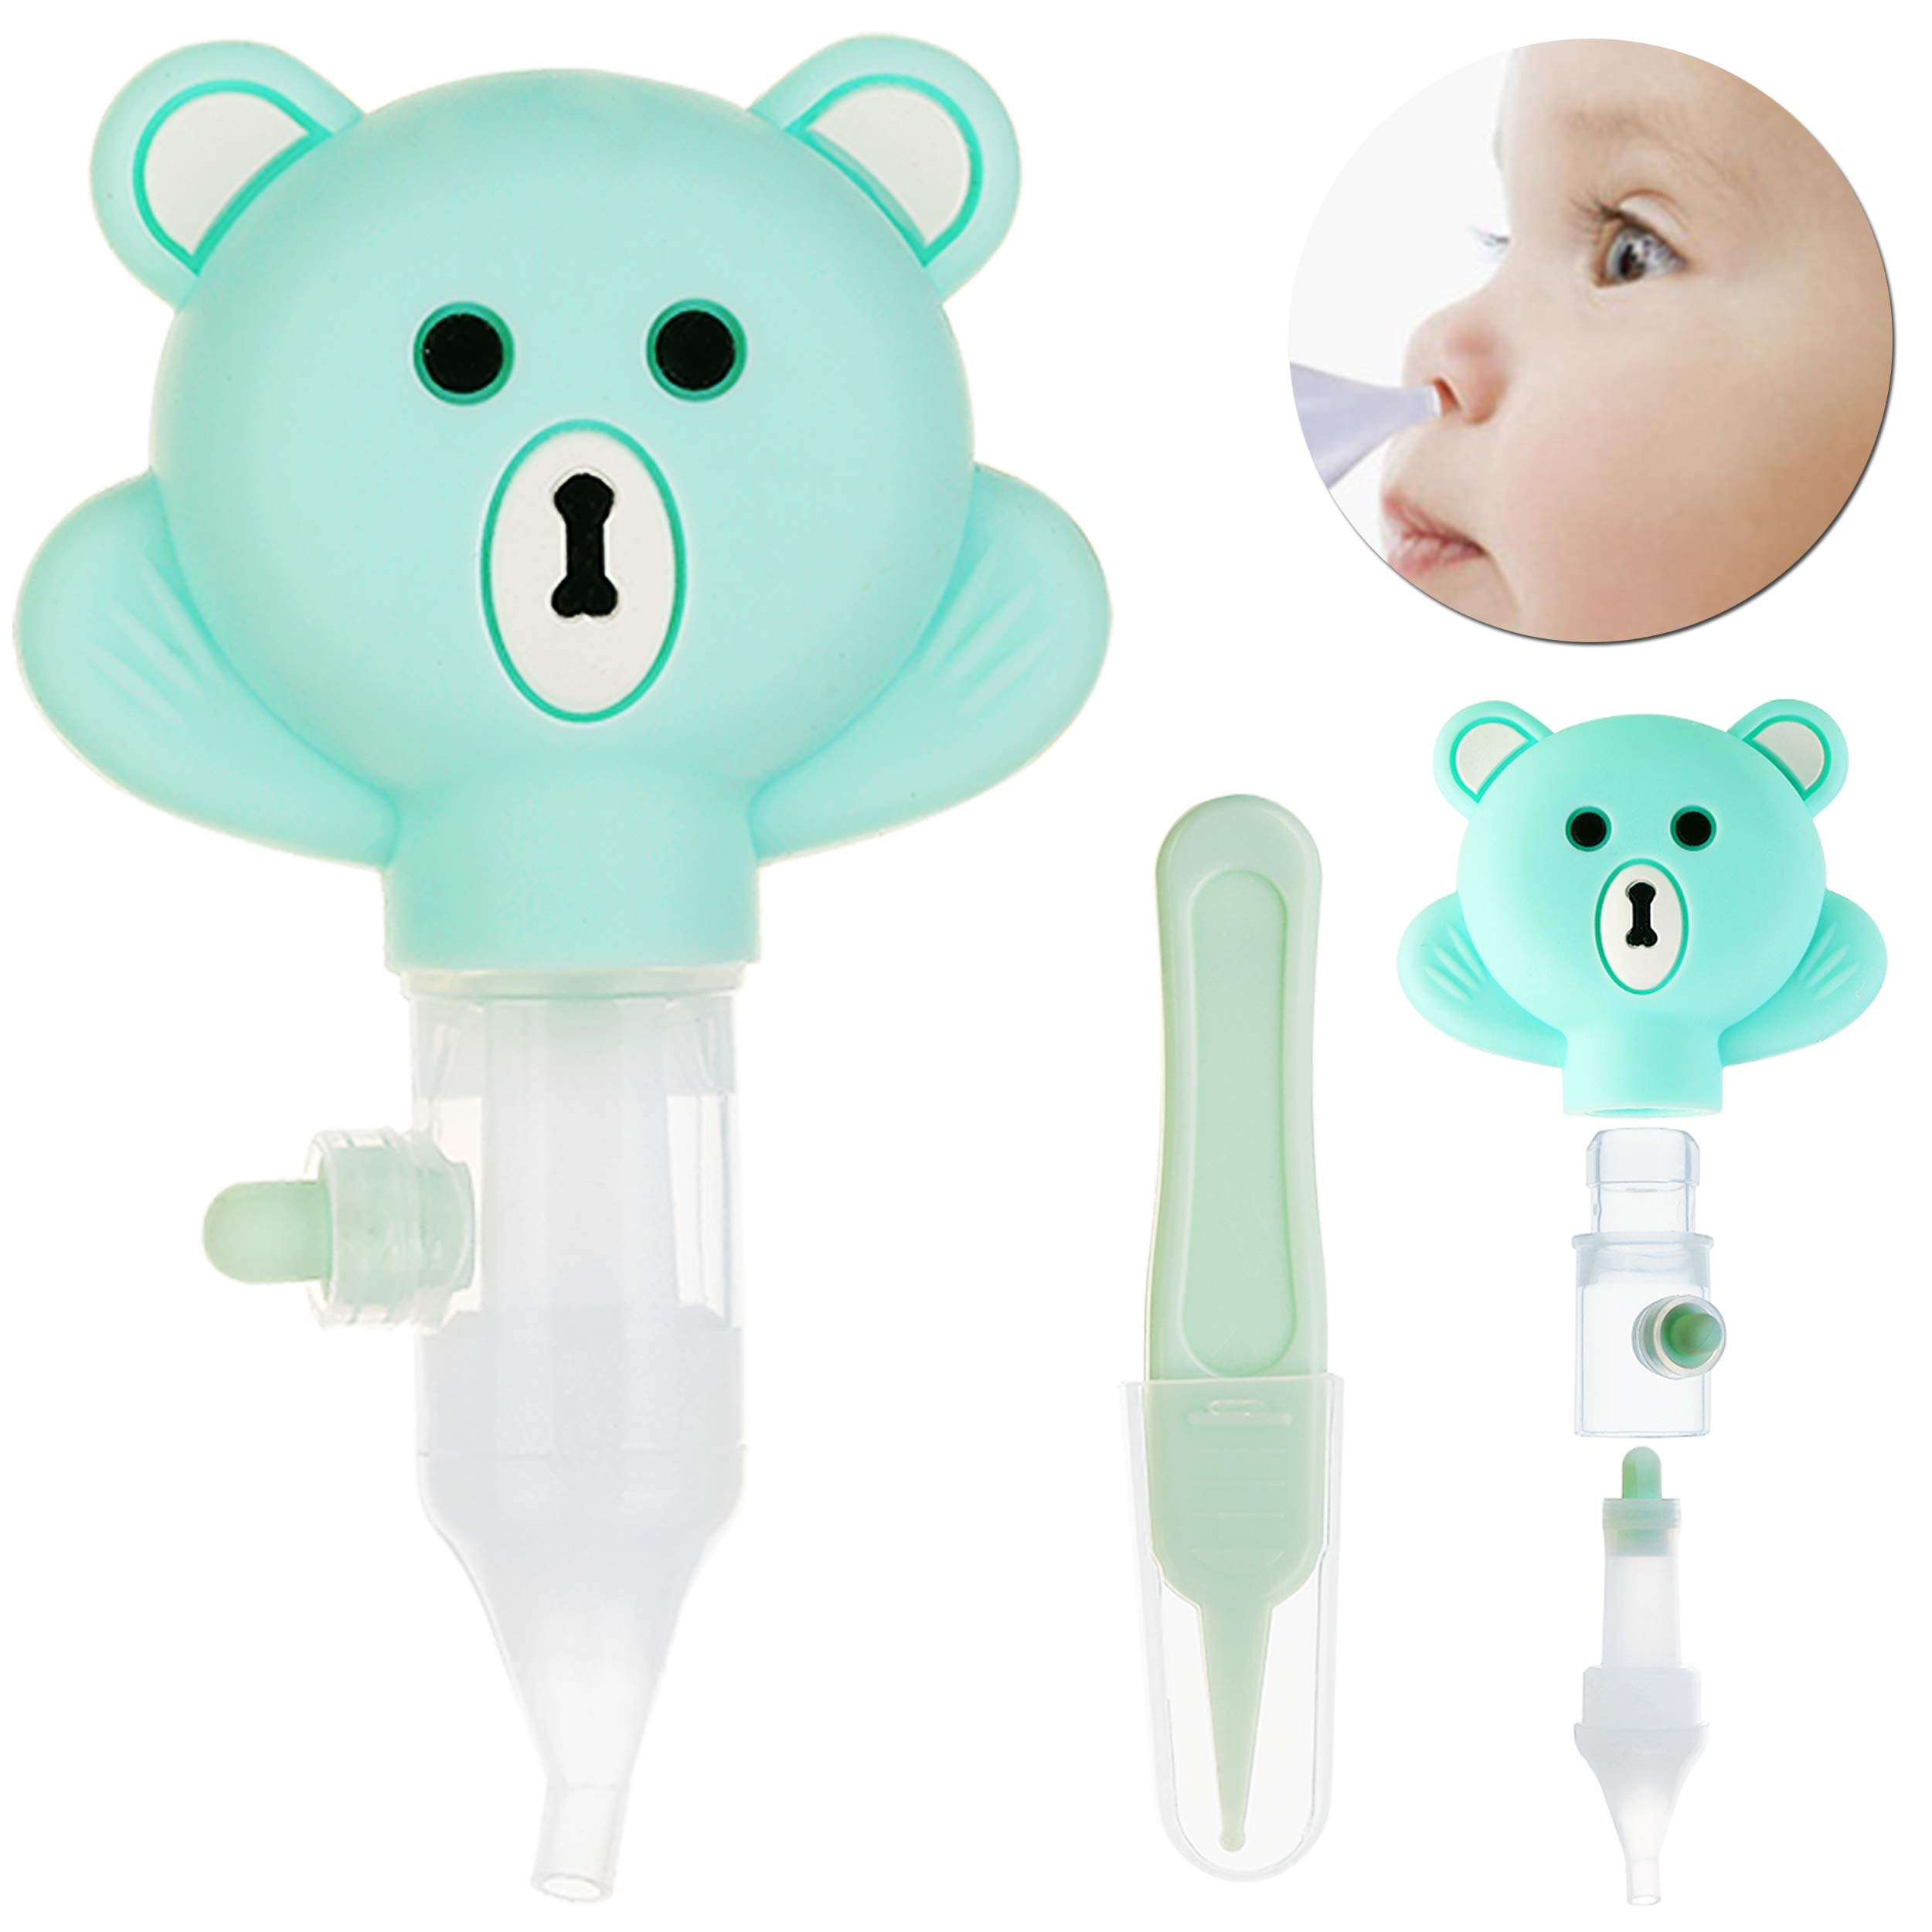 Baby Nasal Aspirator for Newborn,Mucus Sucker Suction,Snot Tweezers Set,Odorless Silicone Nose Cleaner,Easy to Disassemble, Washable and Reusable-Boxed More Portable and Sanitary-Best Gift (Green)